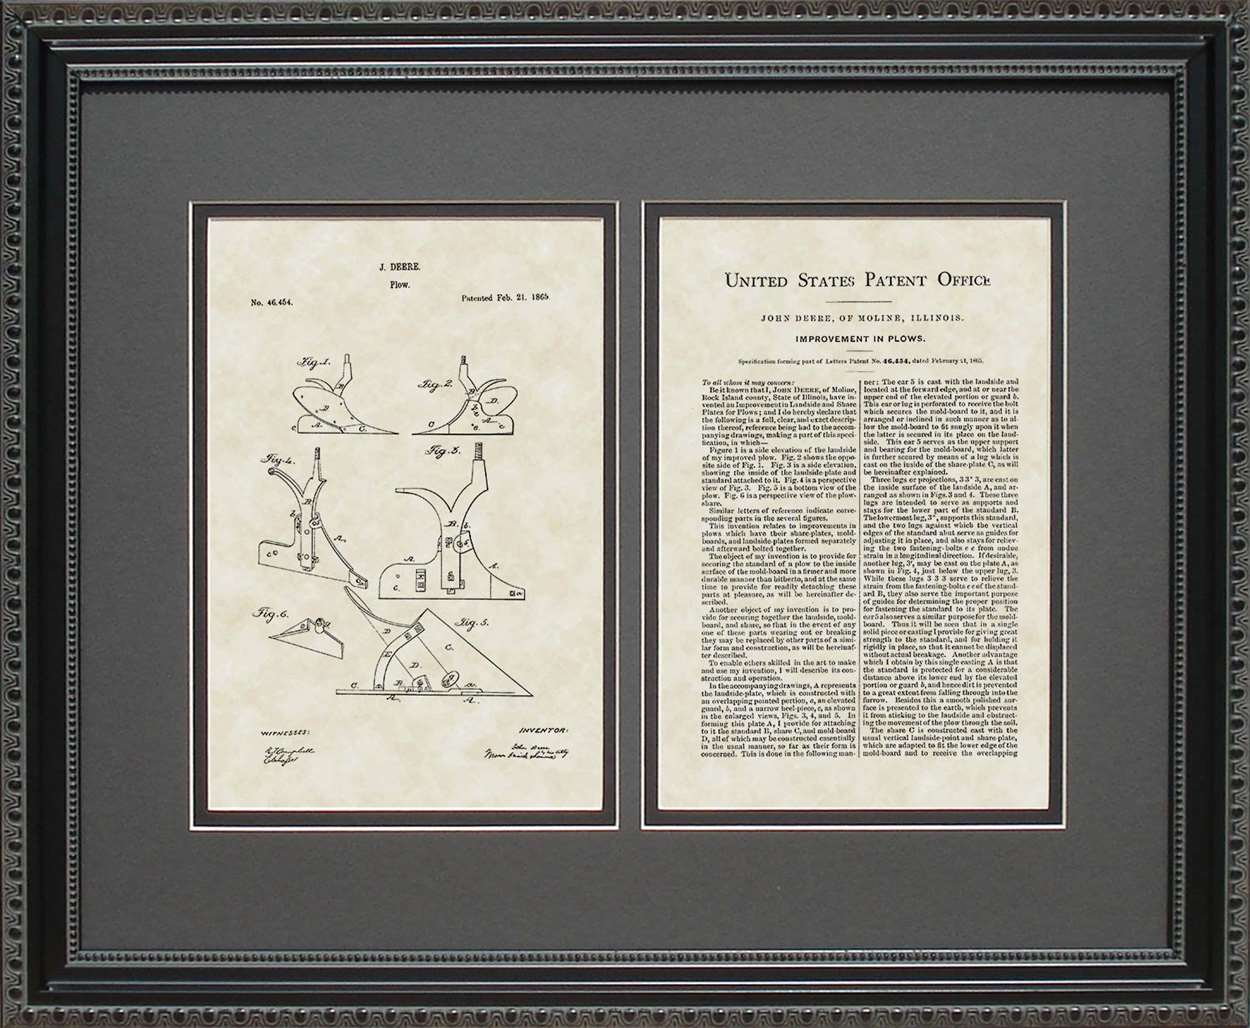 Plow/Implement Patent, Art & Copy, Deere, 1865, 16x20